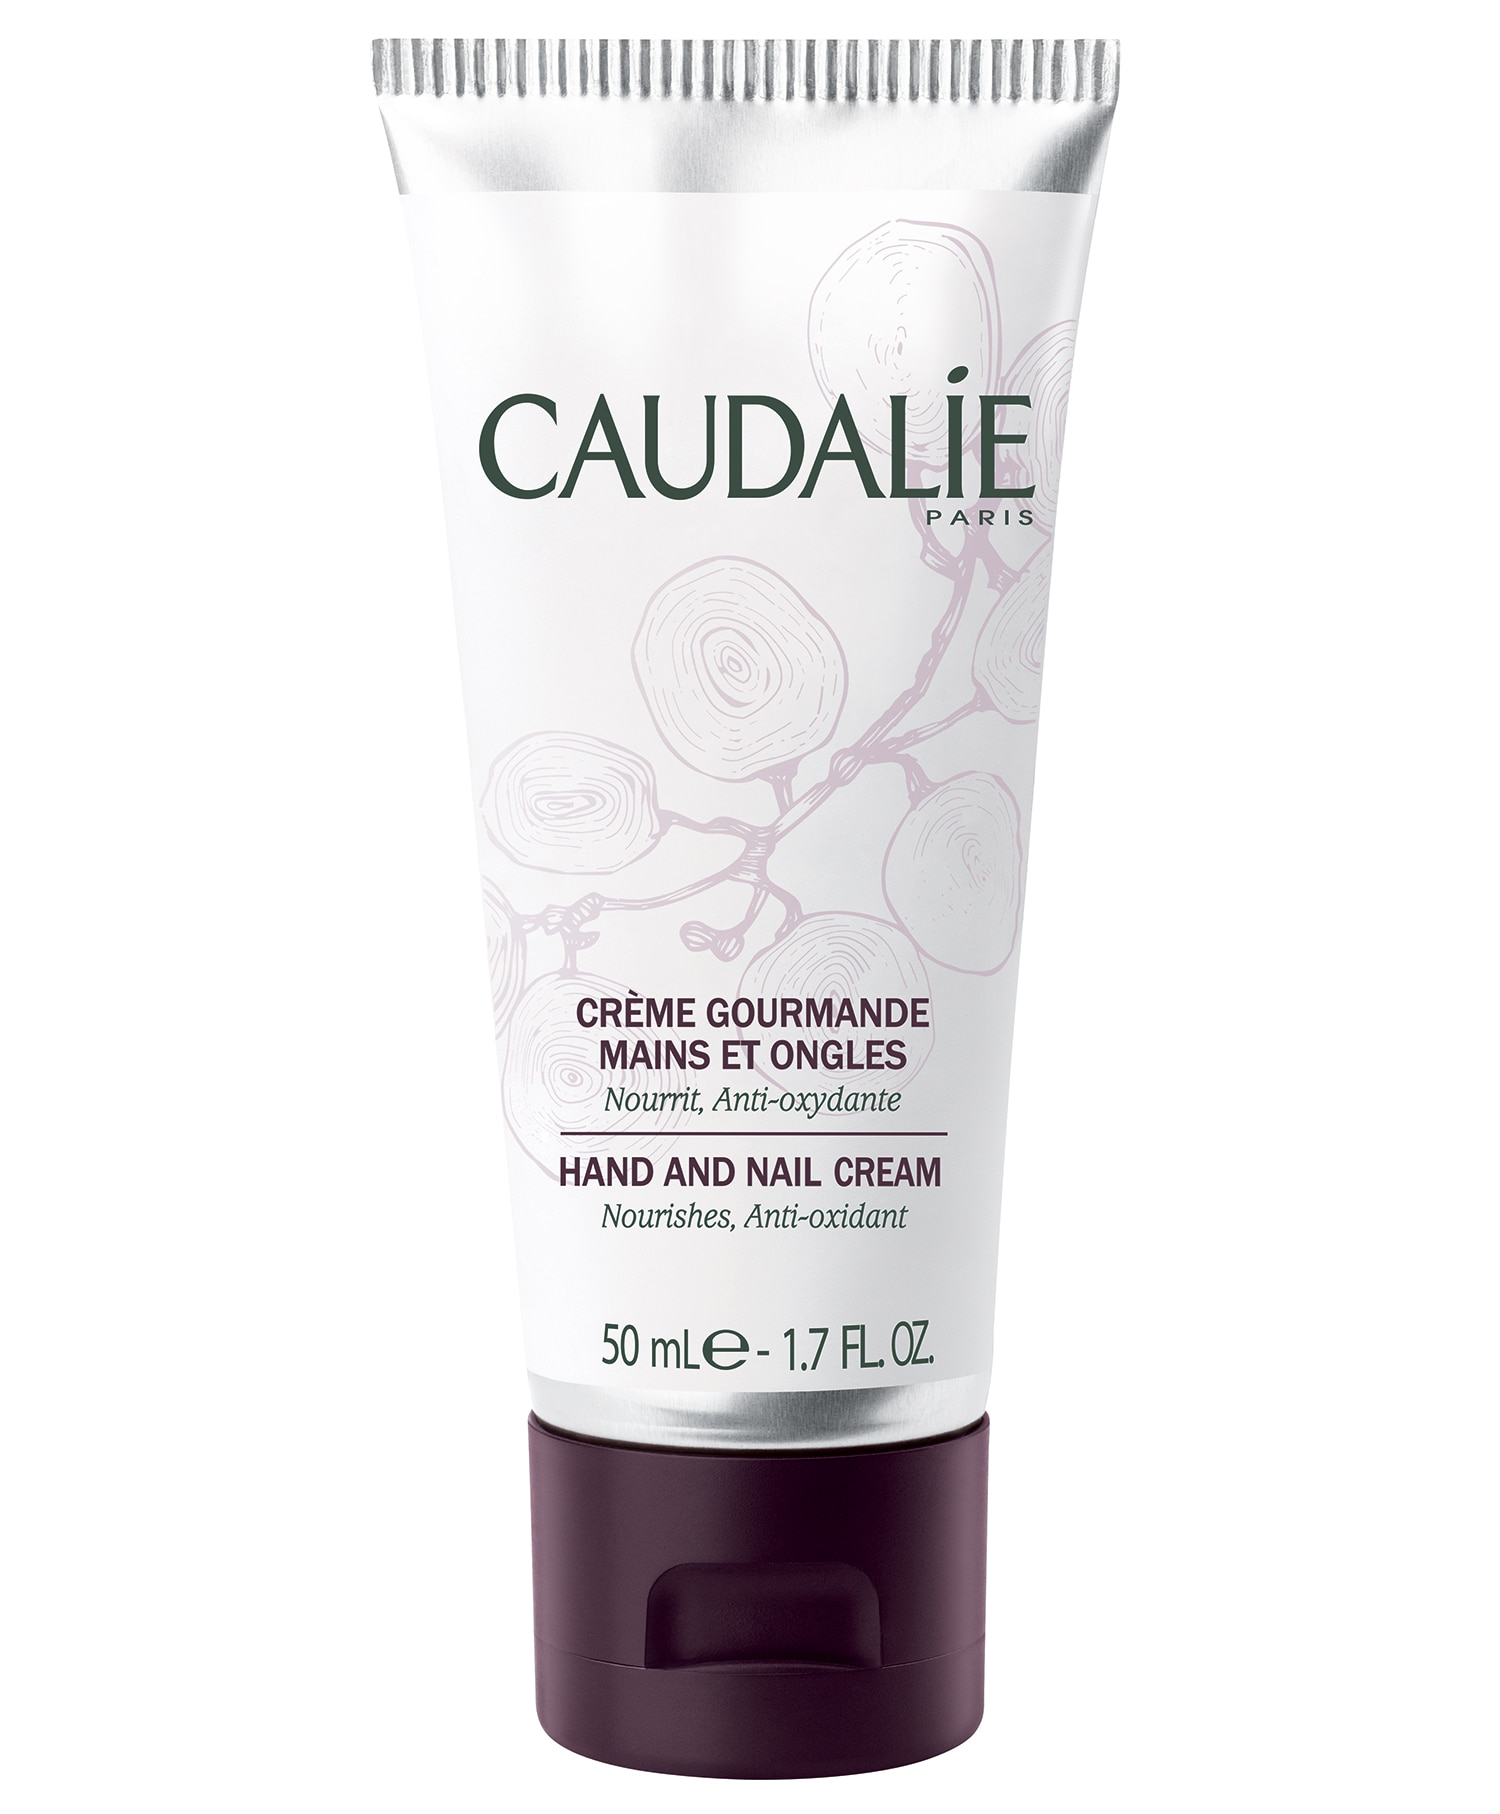 Caudelie Hand and Nail Cream